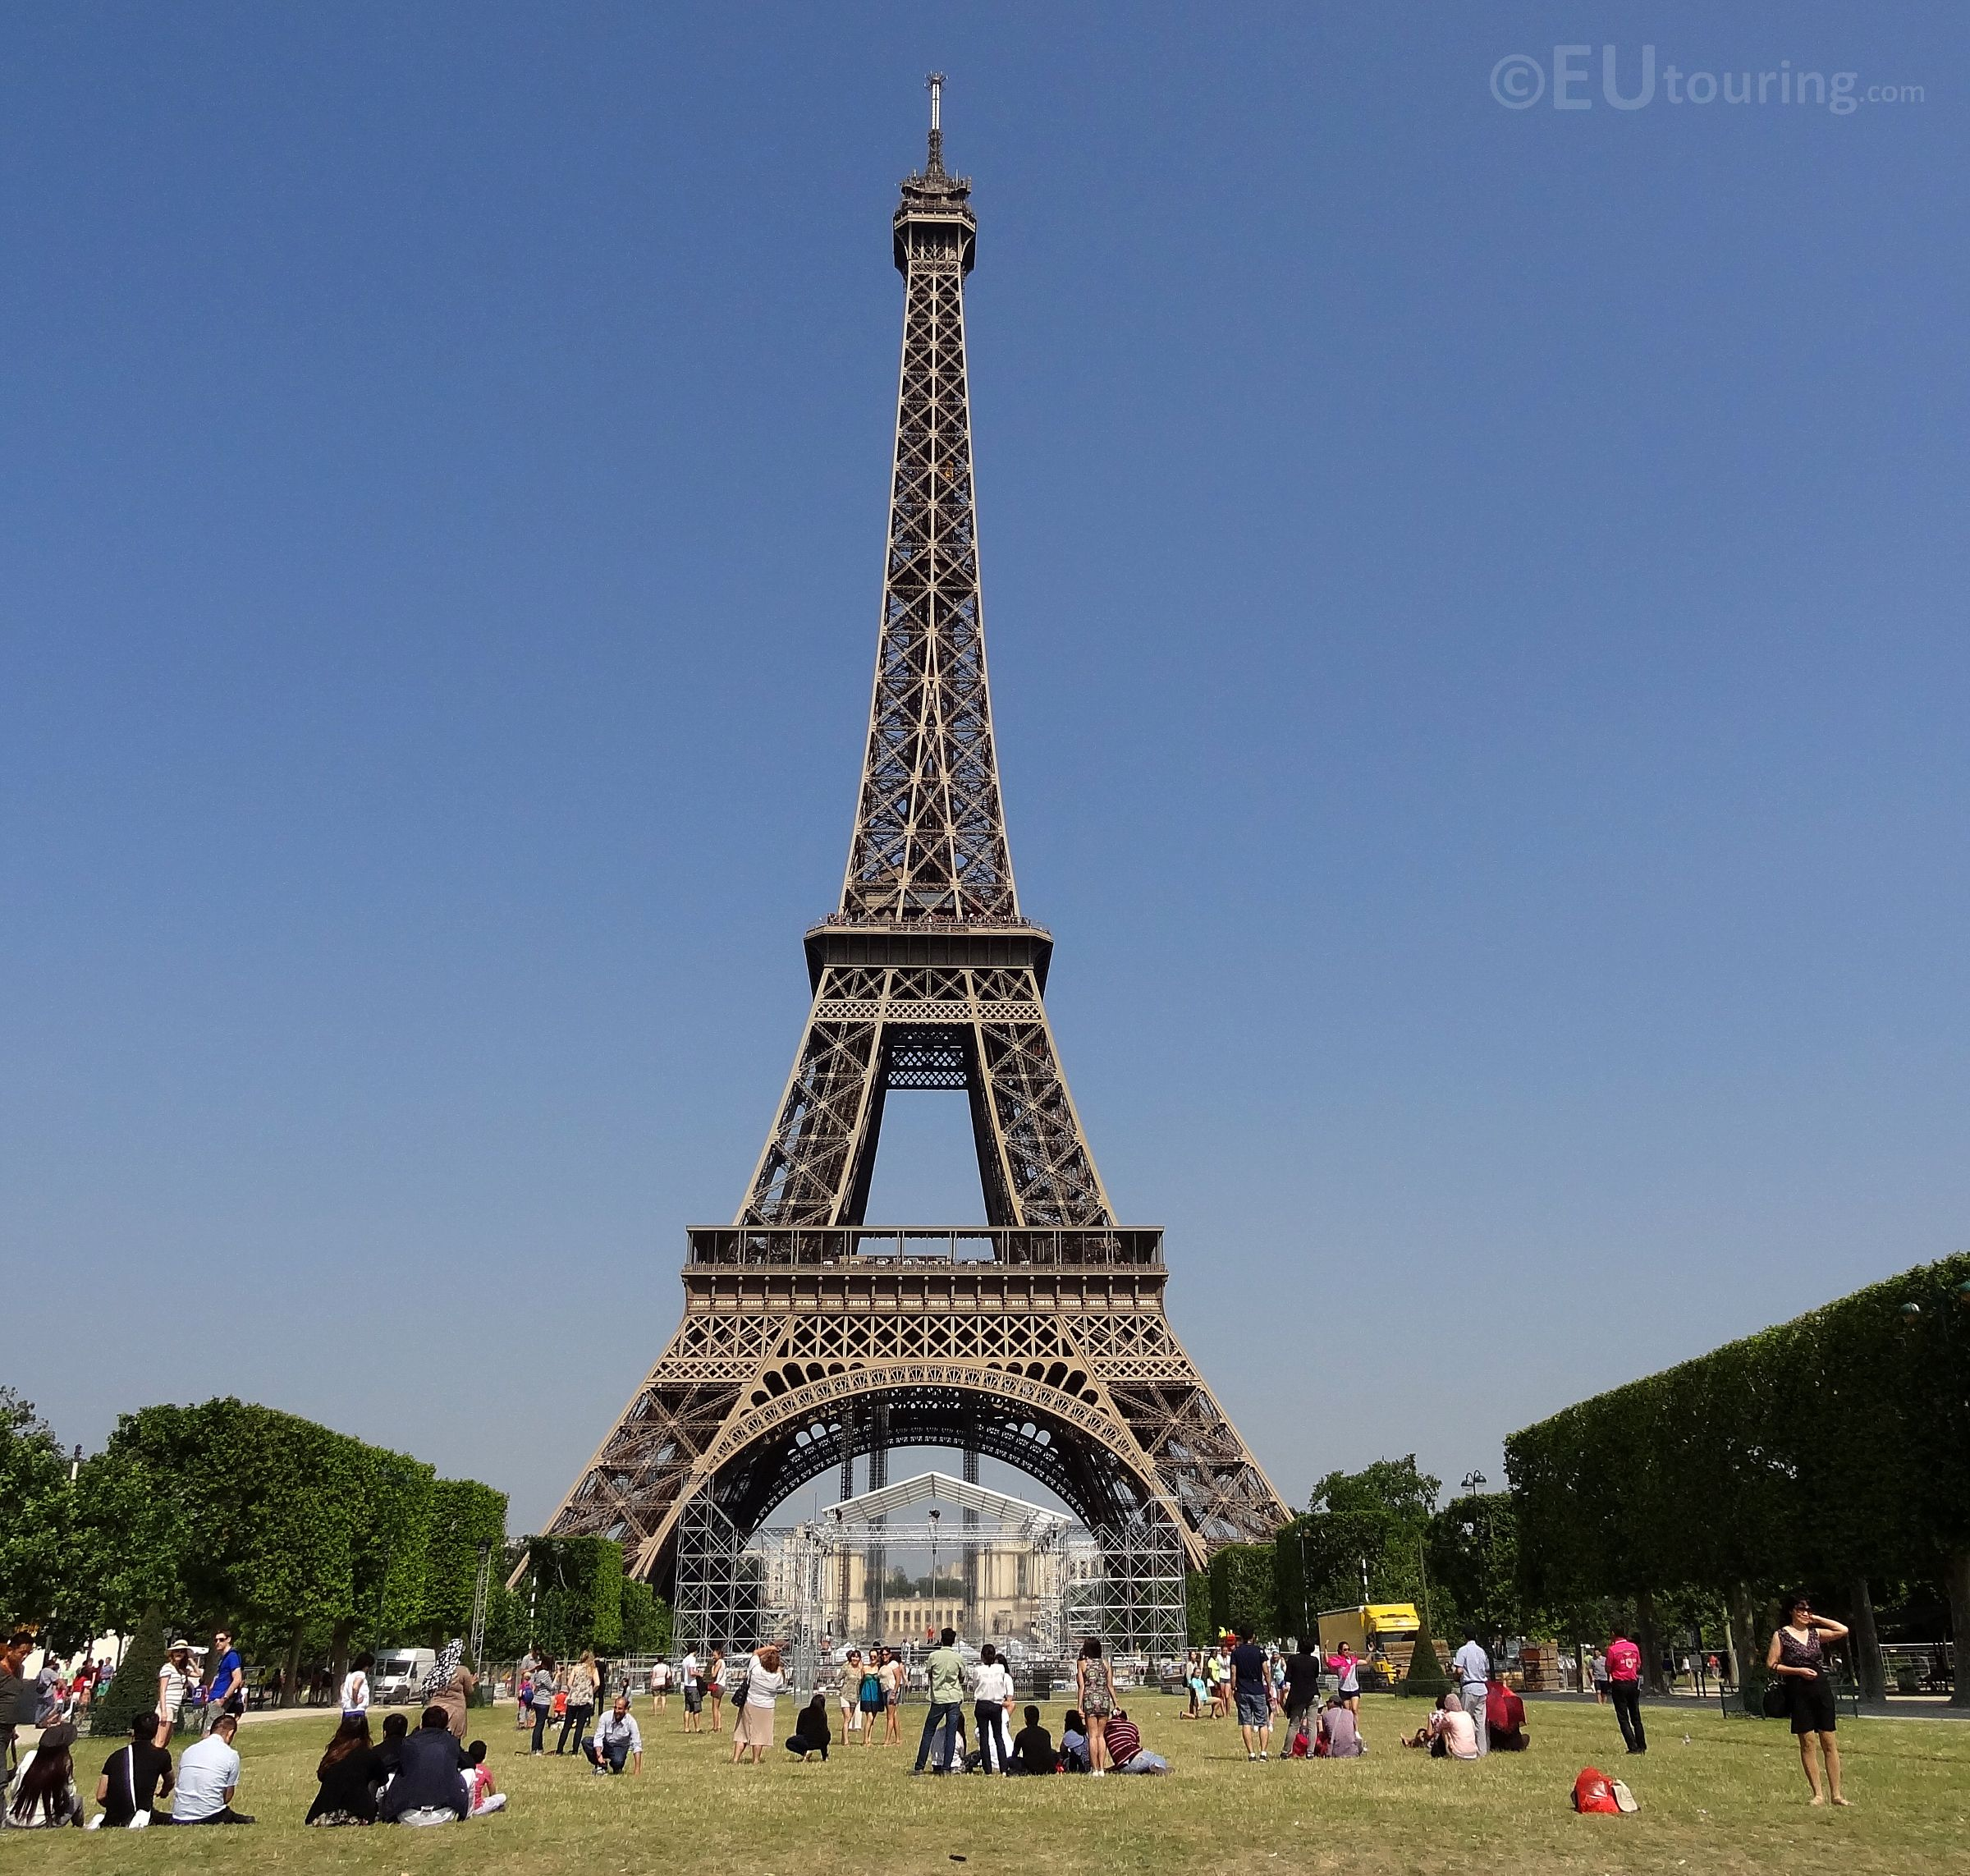 Paris Main Attractions In One Day: The Champ De Mars Park On One Side Of The Eiffel Tower Has